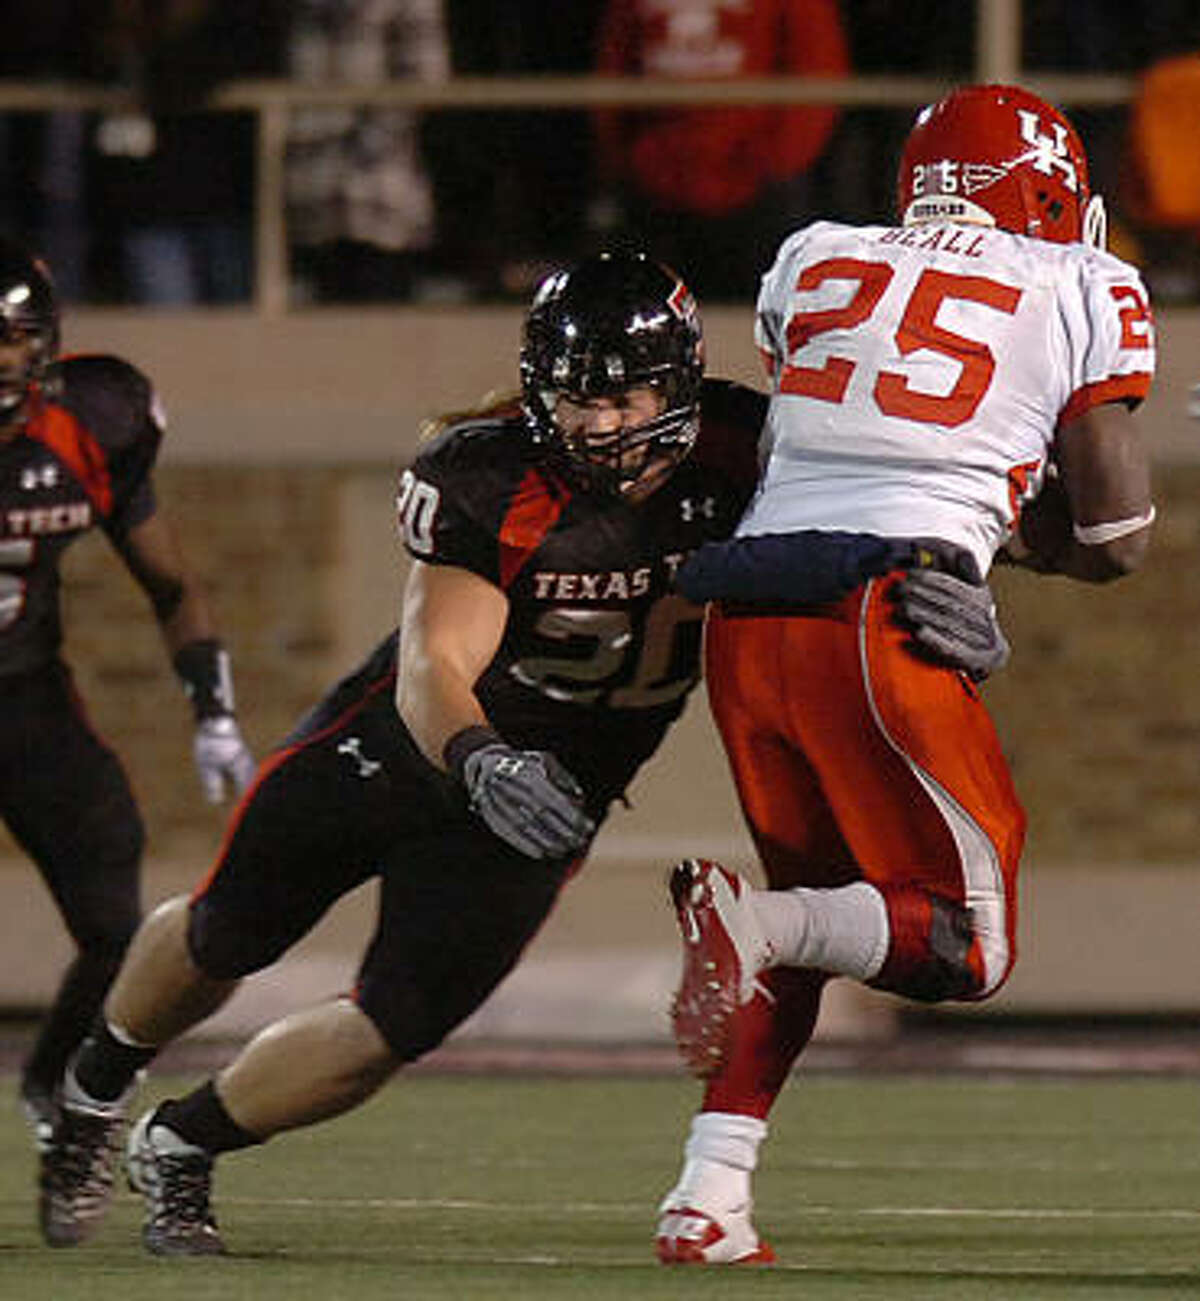 Texas Tech's Bront Bird, left, stops UH running back Bryce Beall during Saturday's game.